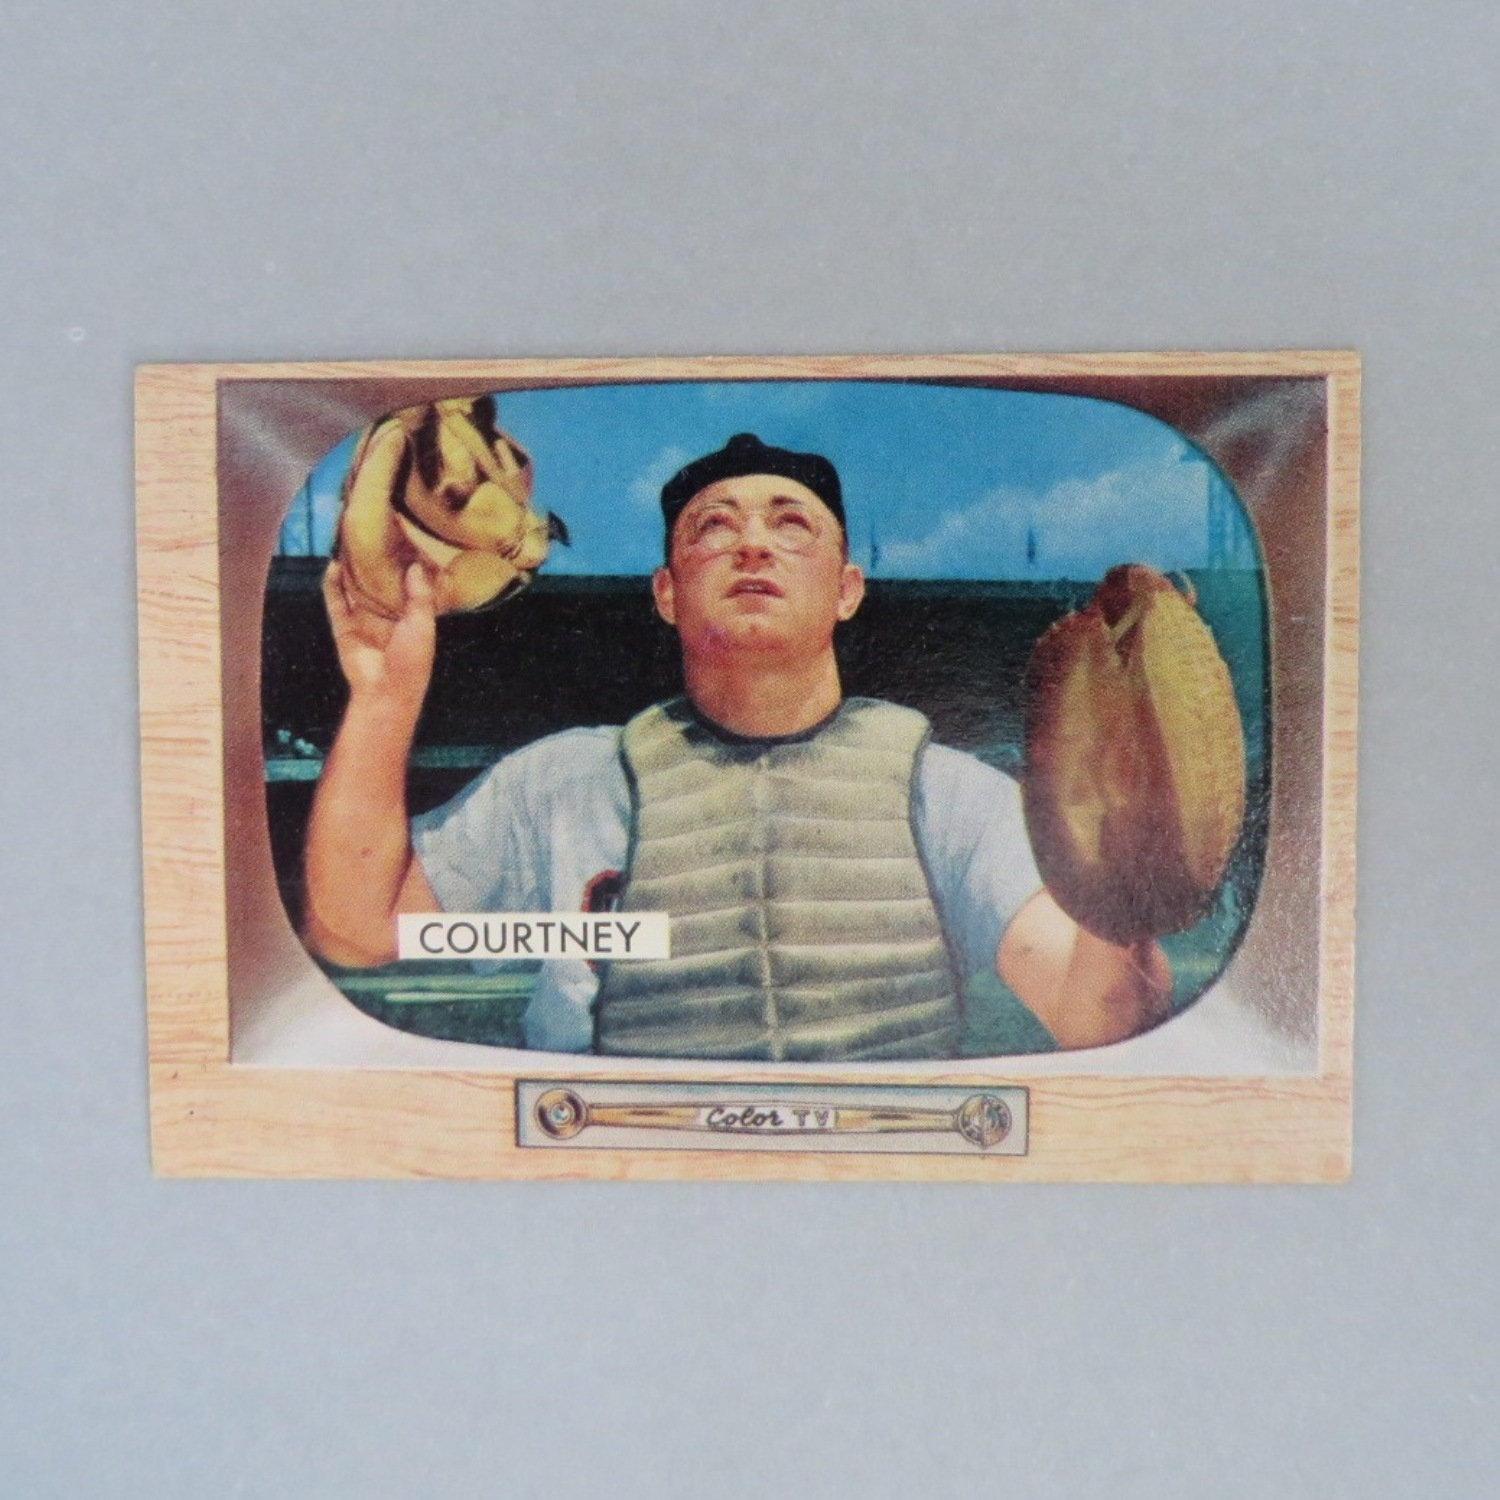 Clint Courtney 1955 Bowman Baseball Card #34, Chicago White Sox Catcher, Vintage - $15.00